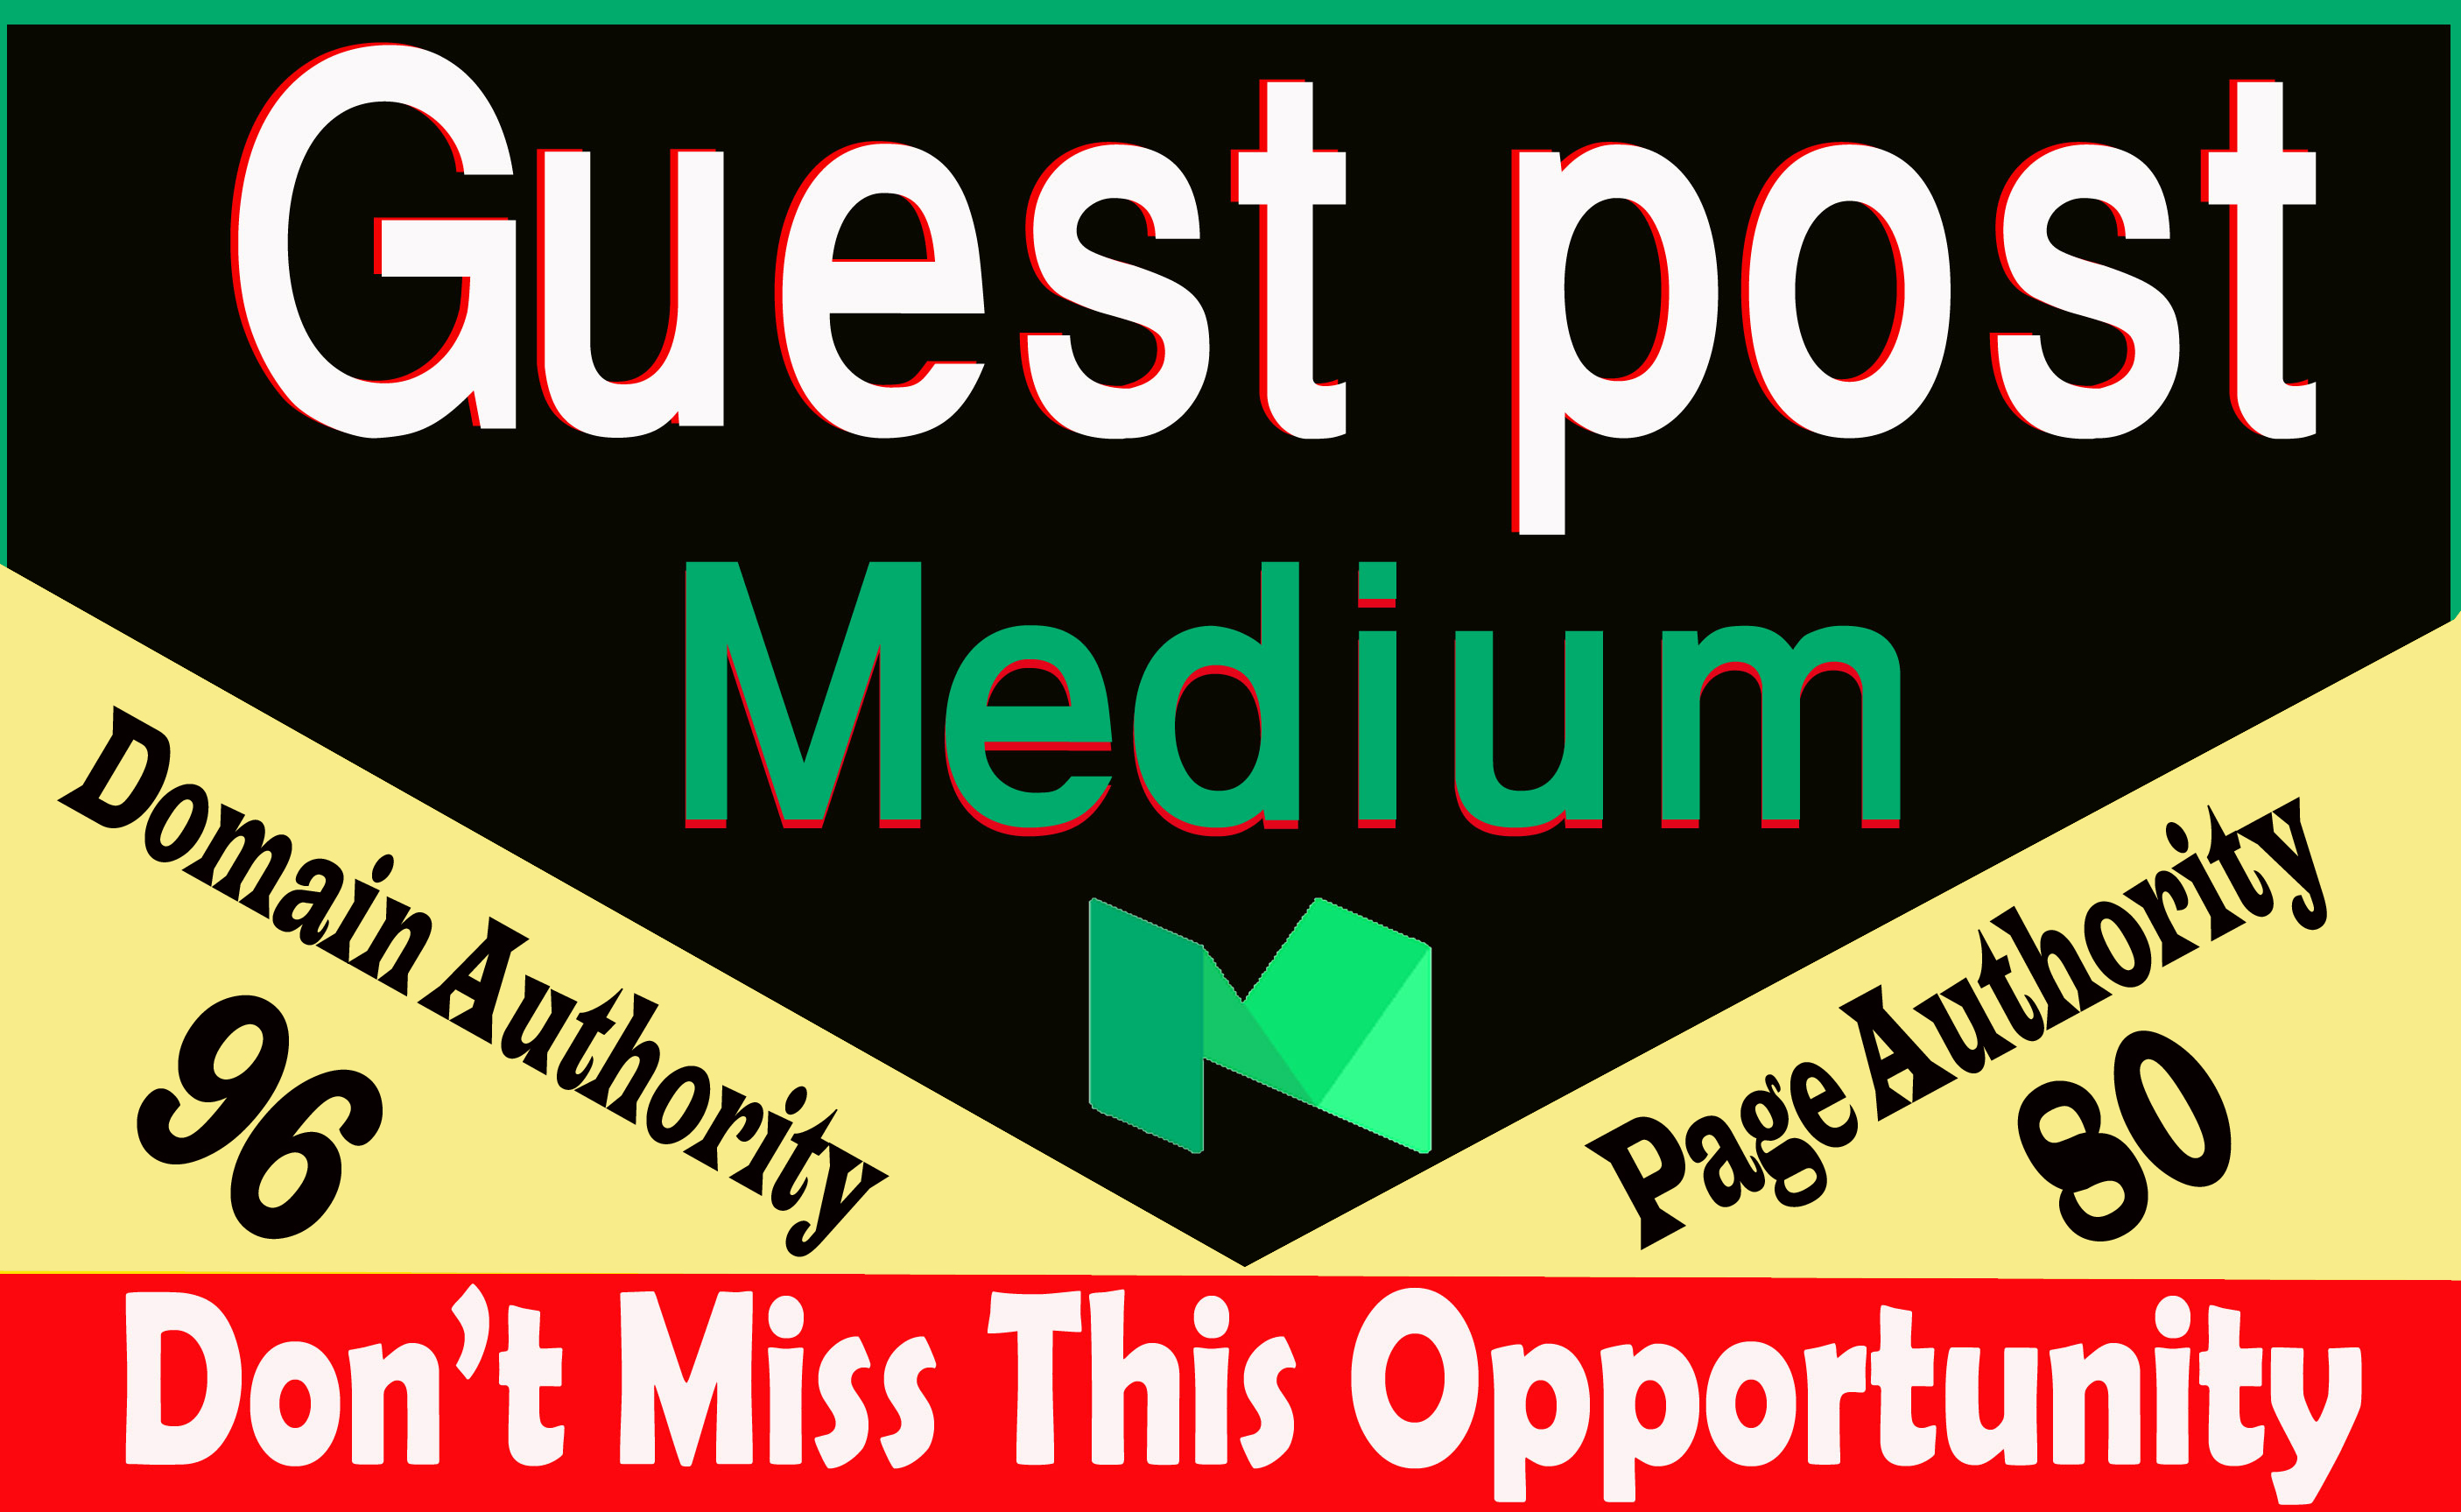 Write and publish guest post Medium .com DA-95, 100% index guarantee within 24 hours